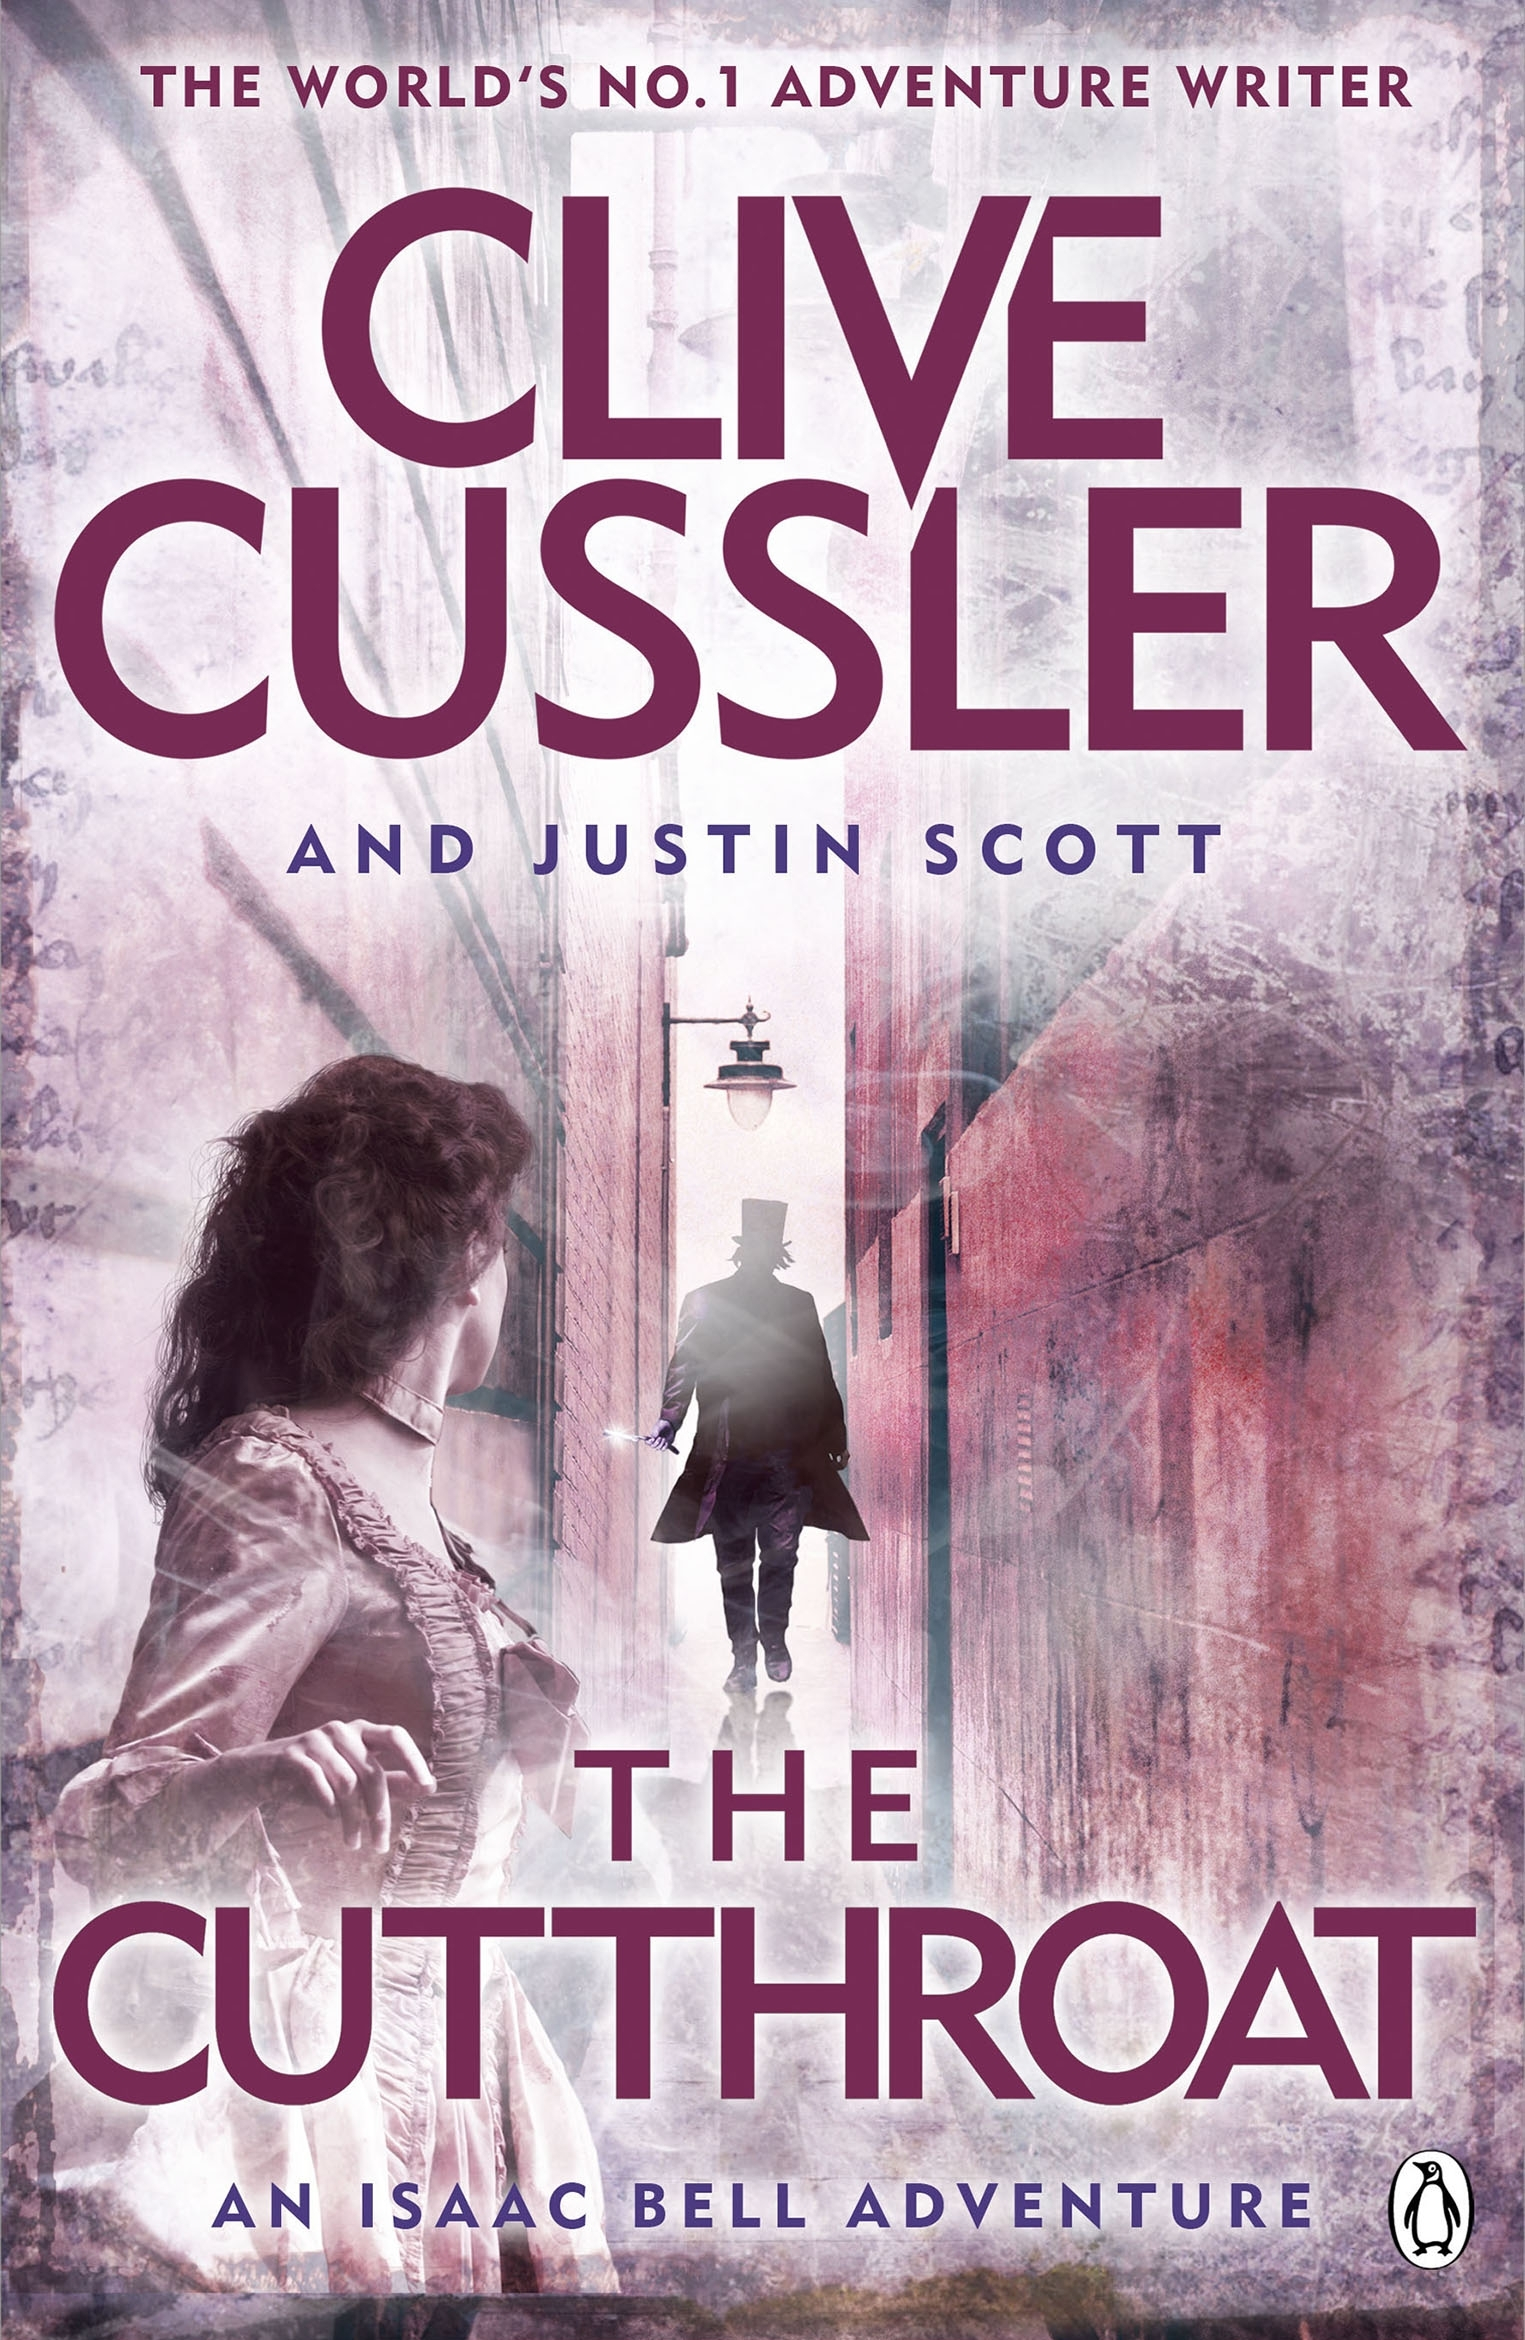 The Cutthroat: Isaac Bell, Book 10 by Clive Cussler, ISBN: 9781405927680